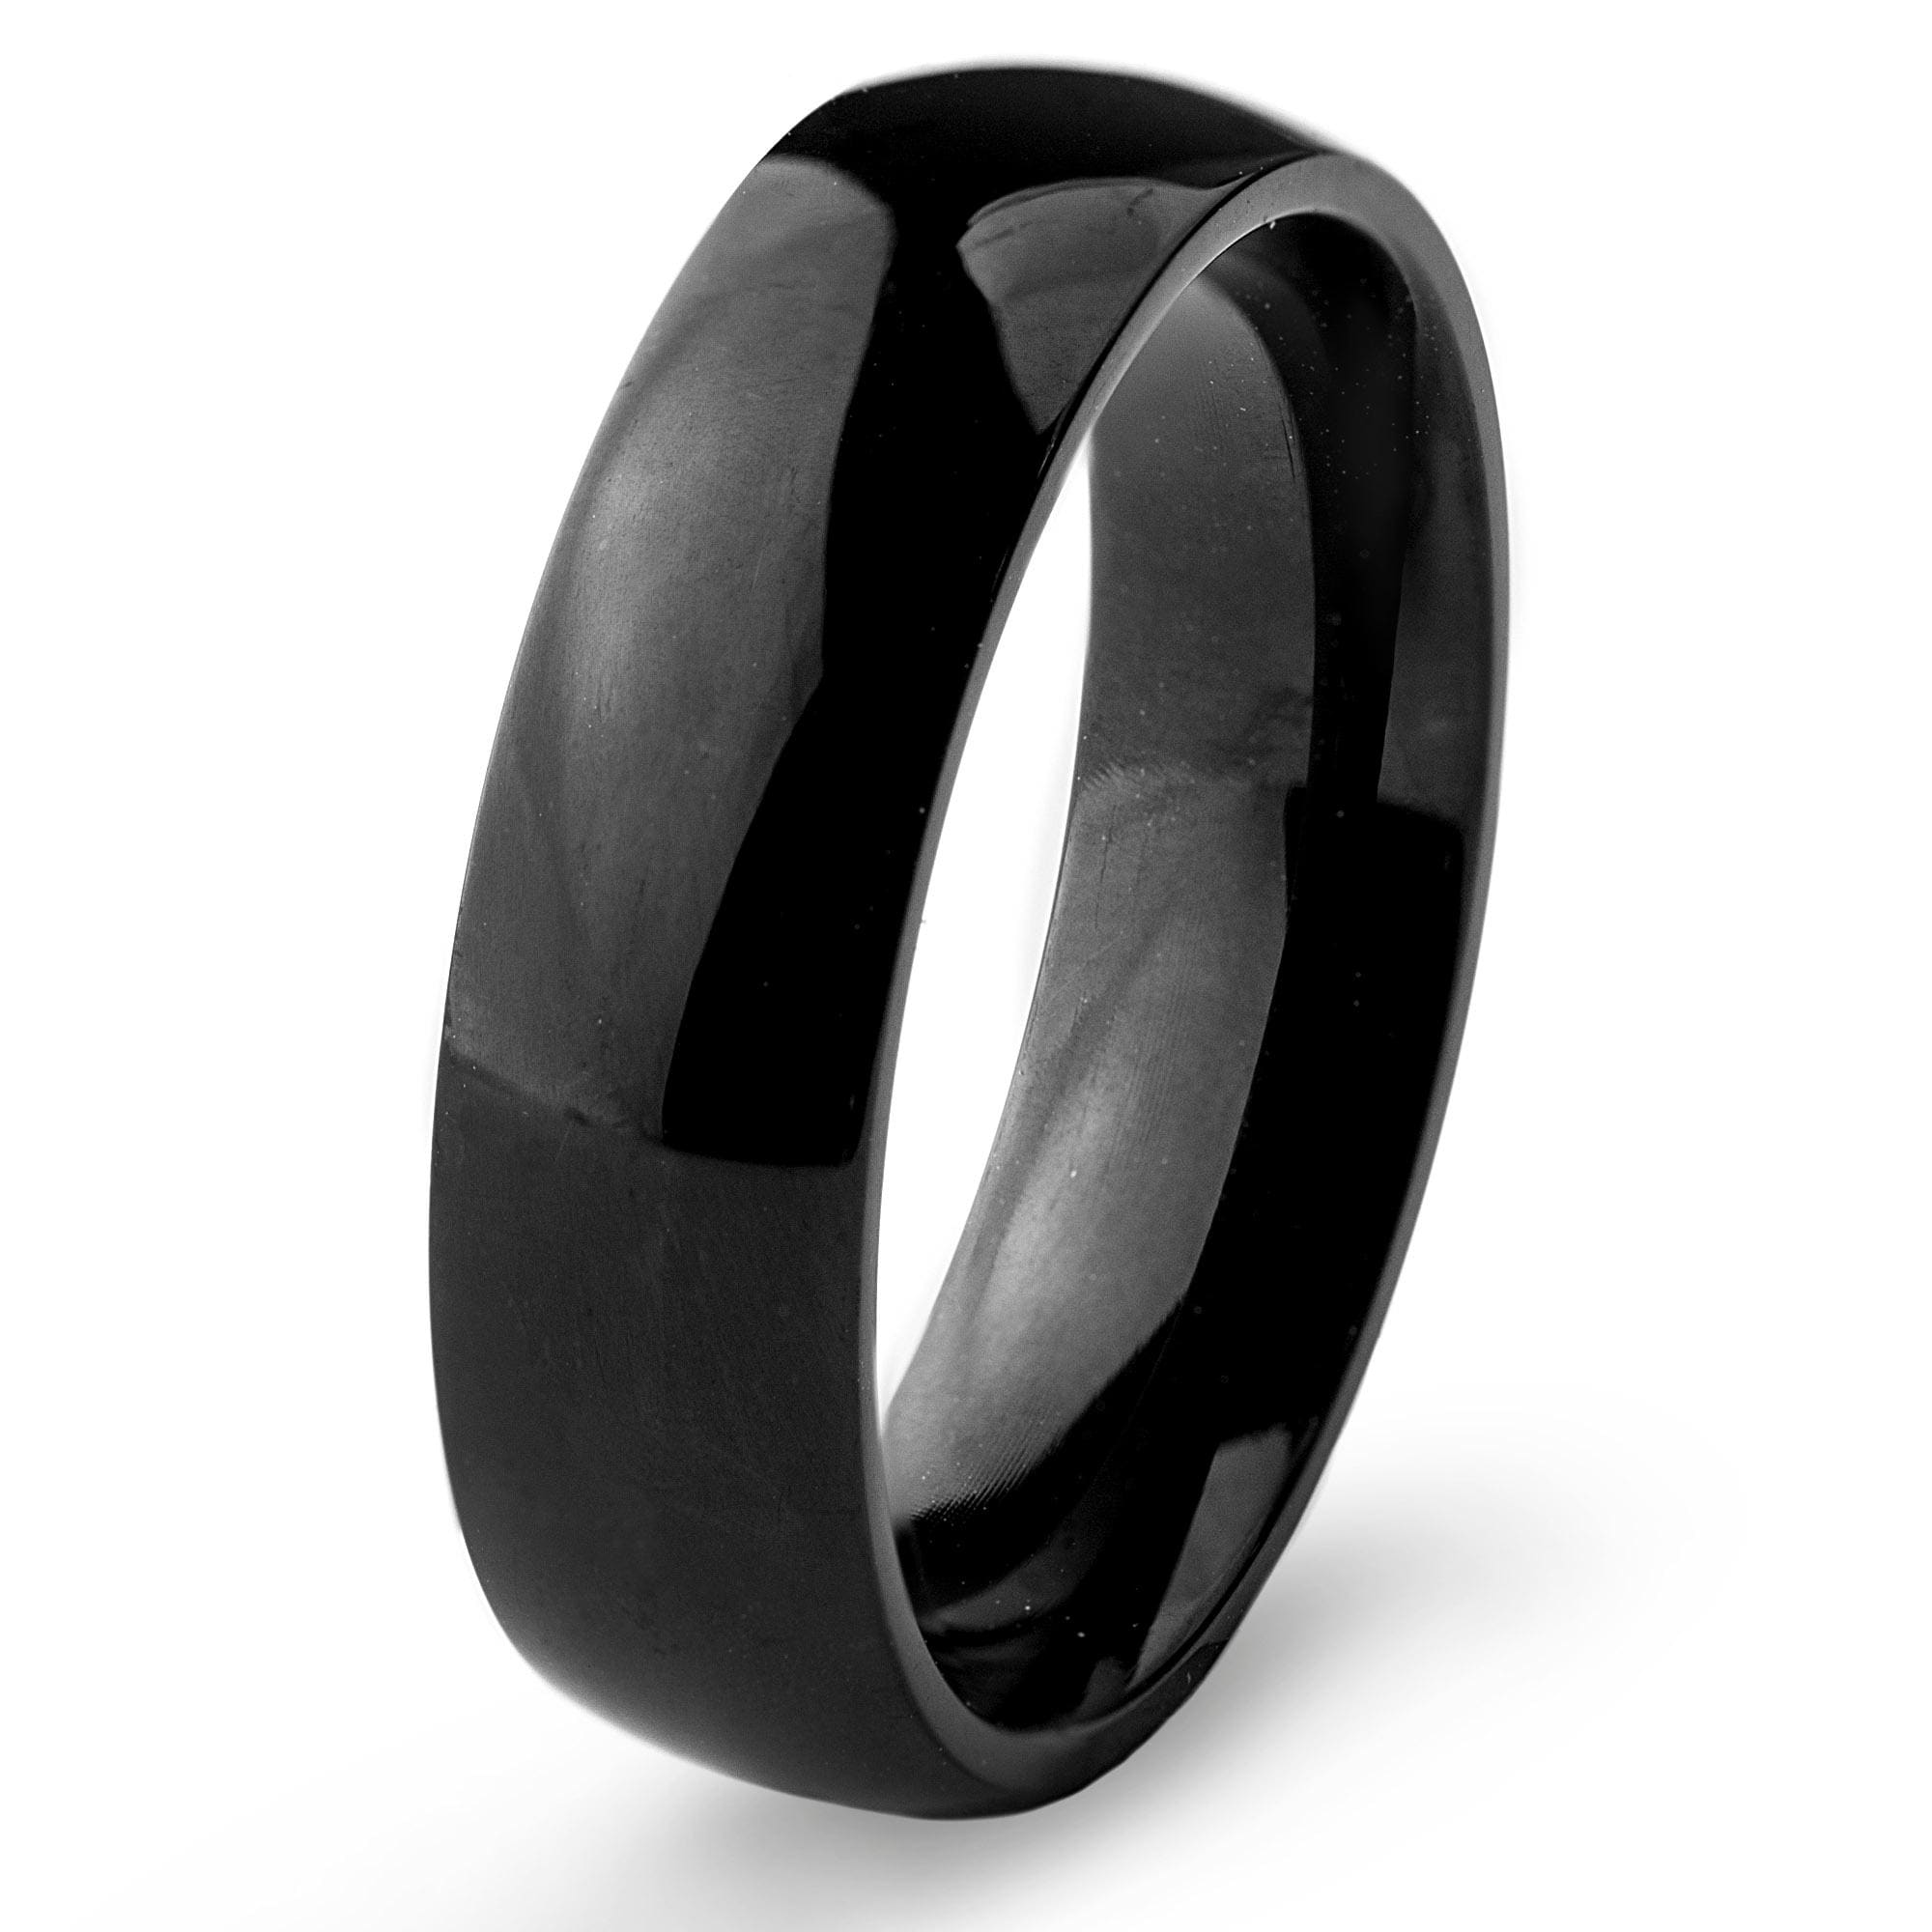 Stainless Steel 6mm Wide Glossy Mirror Polished Black Plated Dome Band Ring